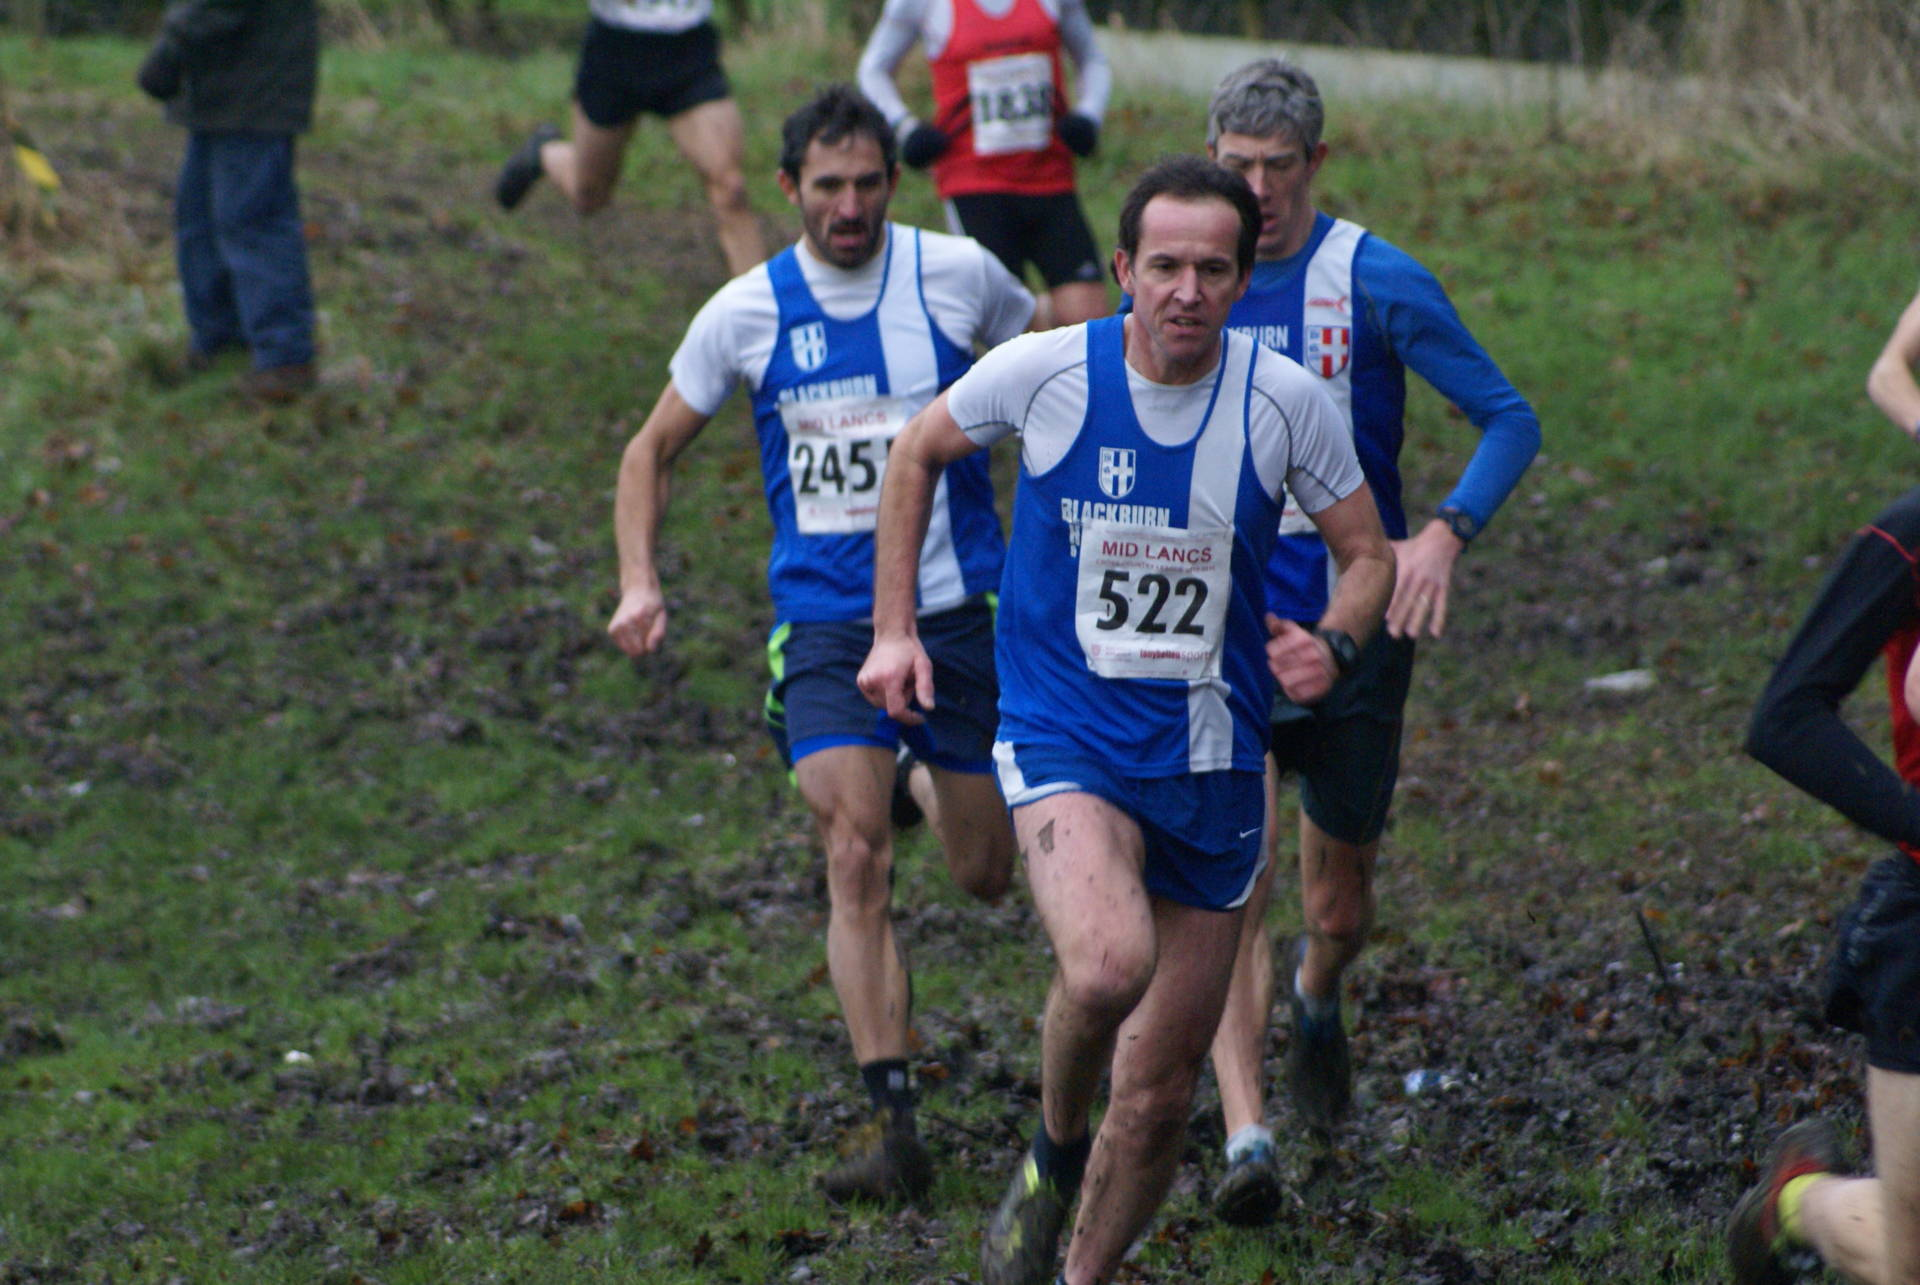 Individual and Team Wins at Hyndburn Mid Lancs Cross Country